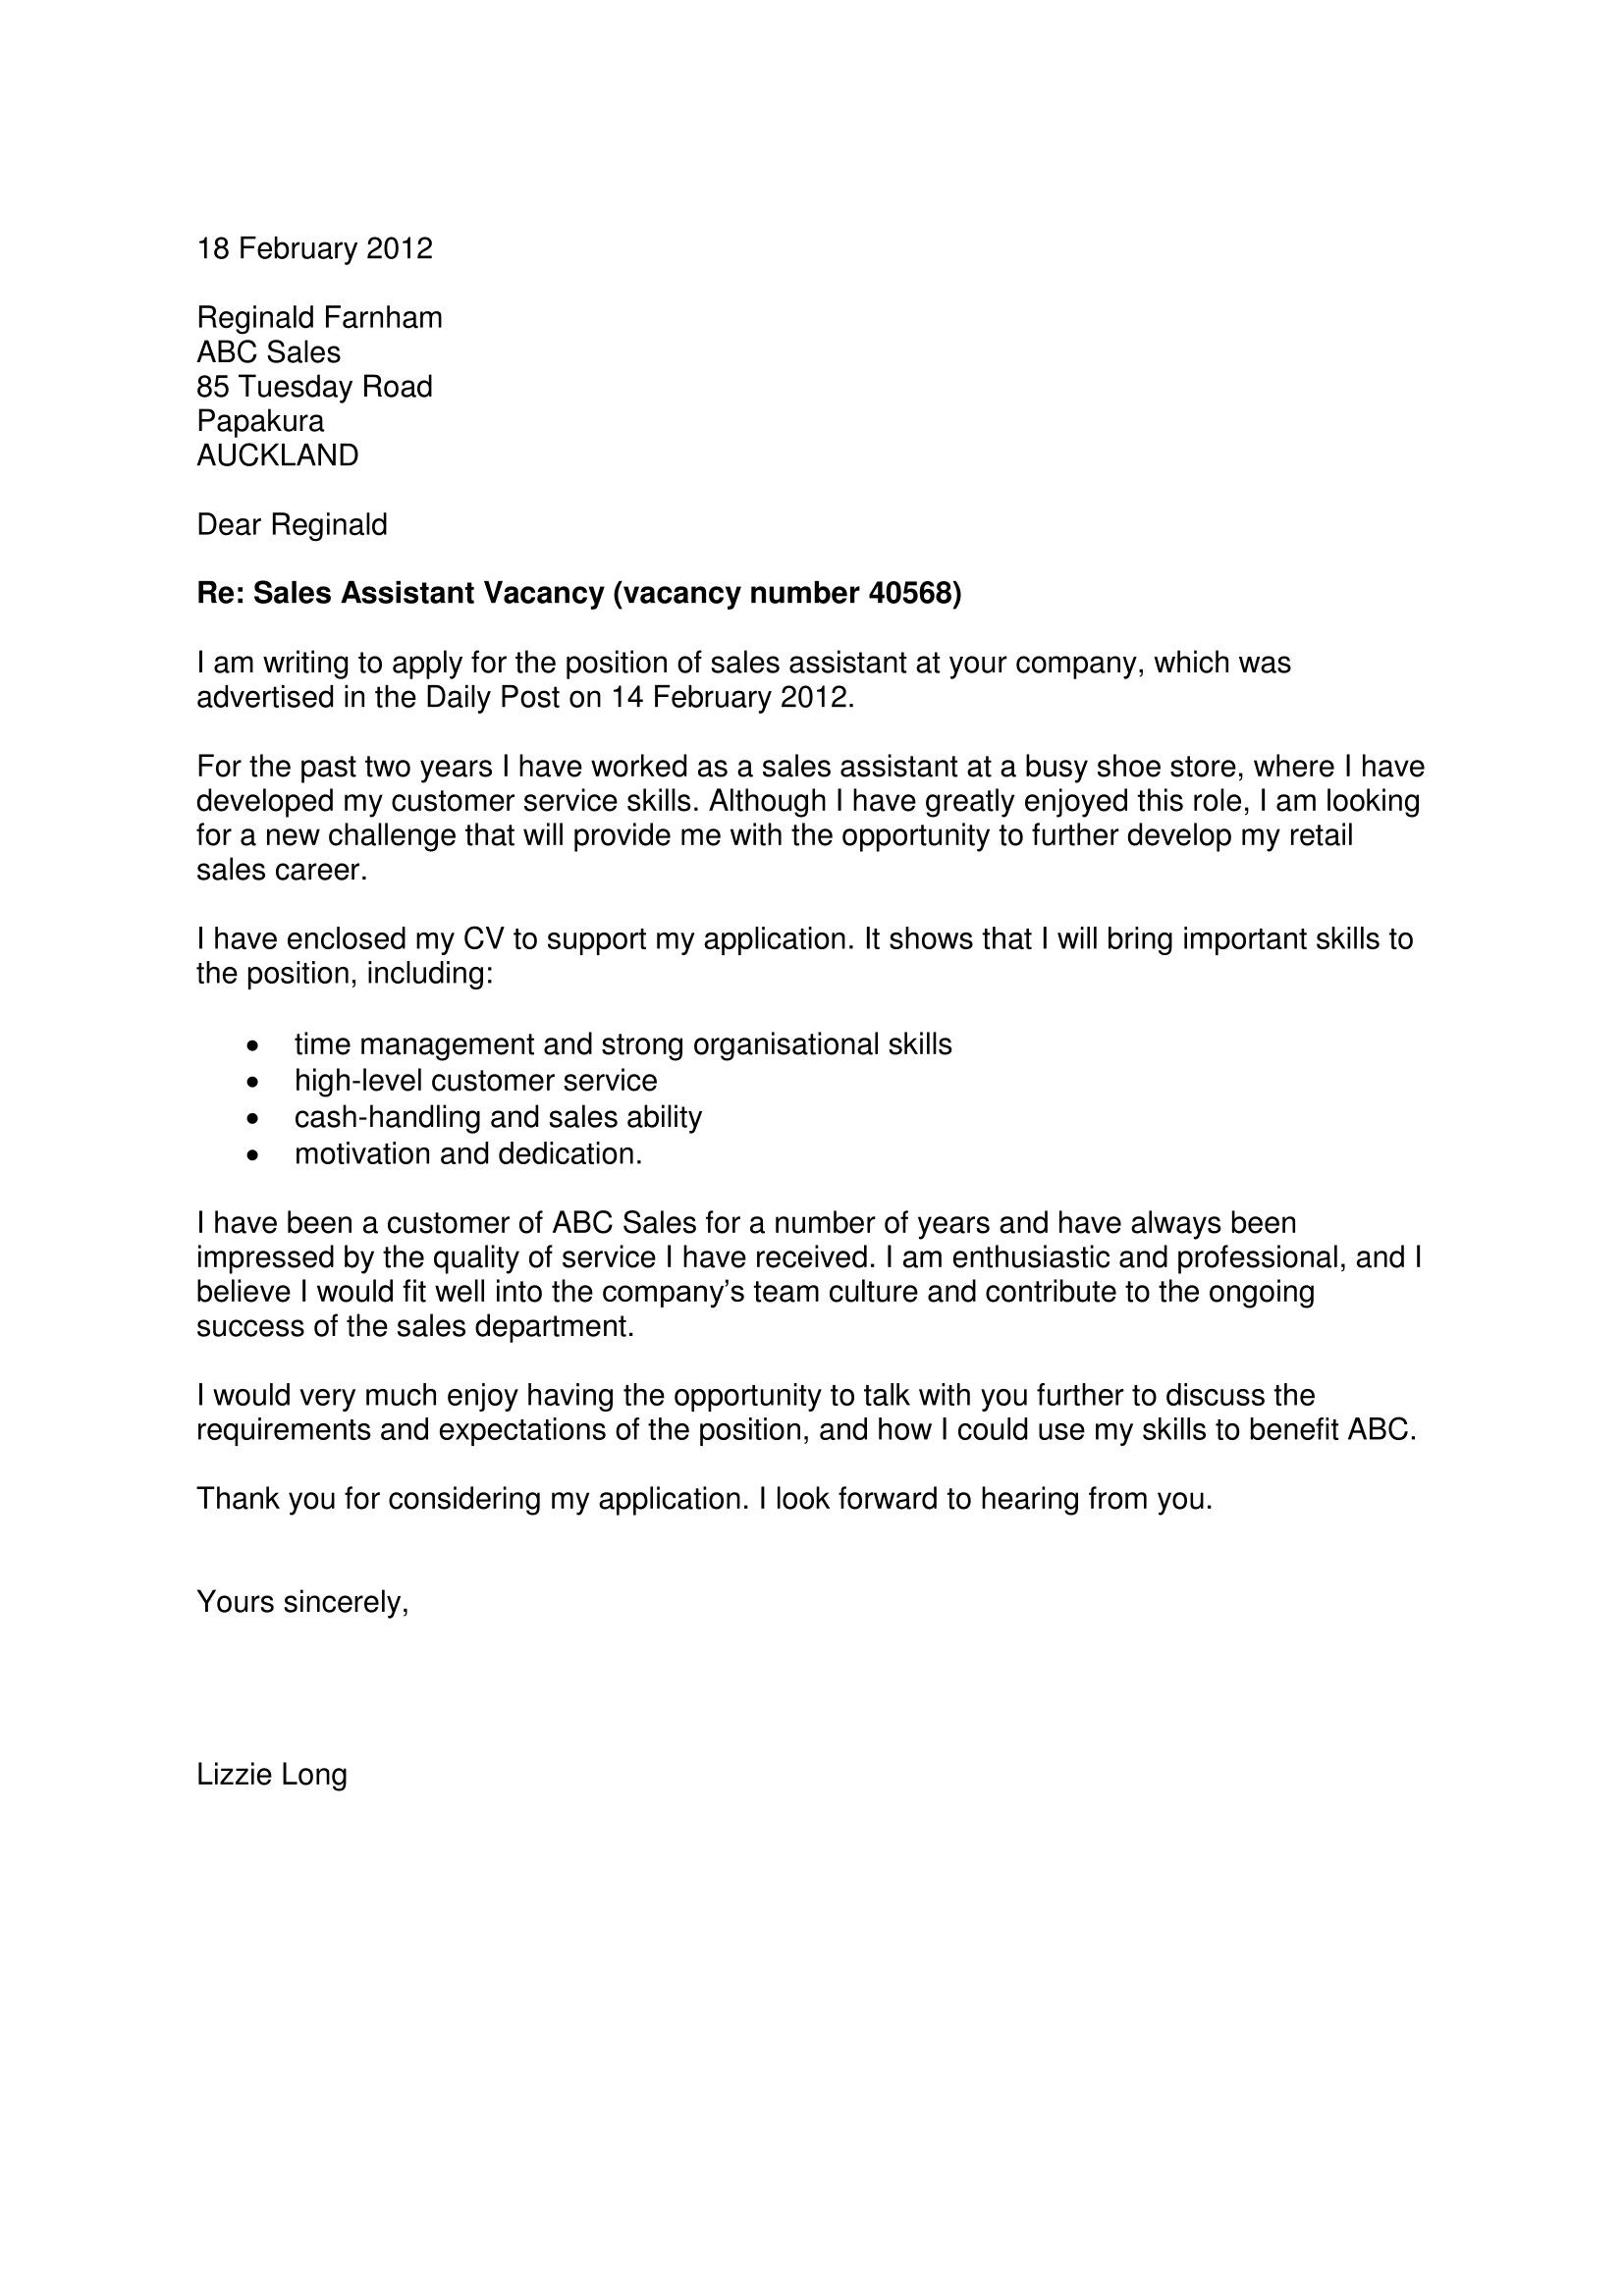 Cover Letter Template Nz Cover letter template, Cover